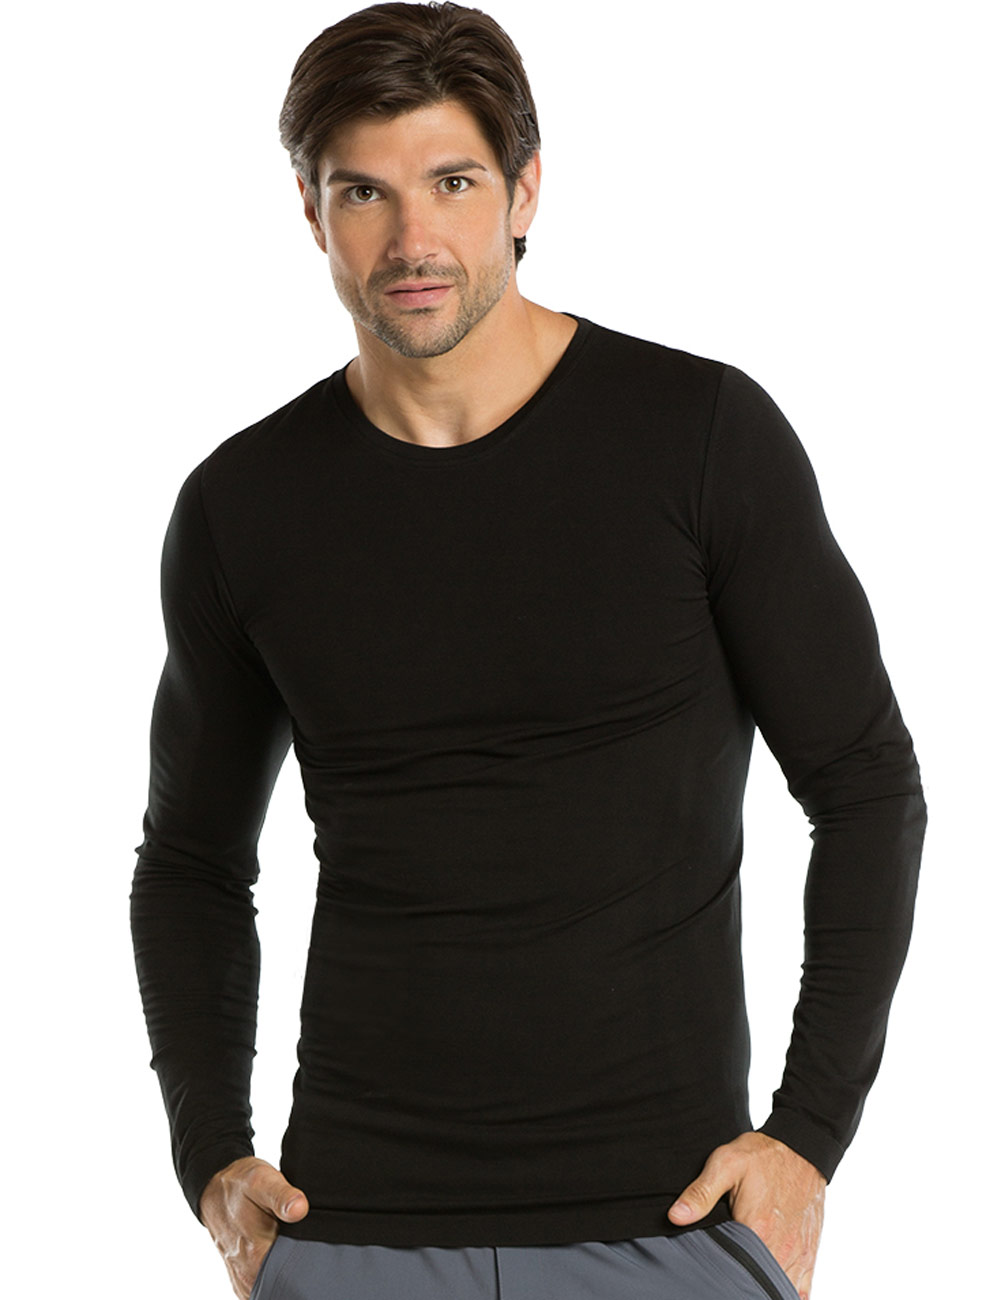 'Barco One' Men's Long Sleeve Tee